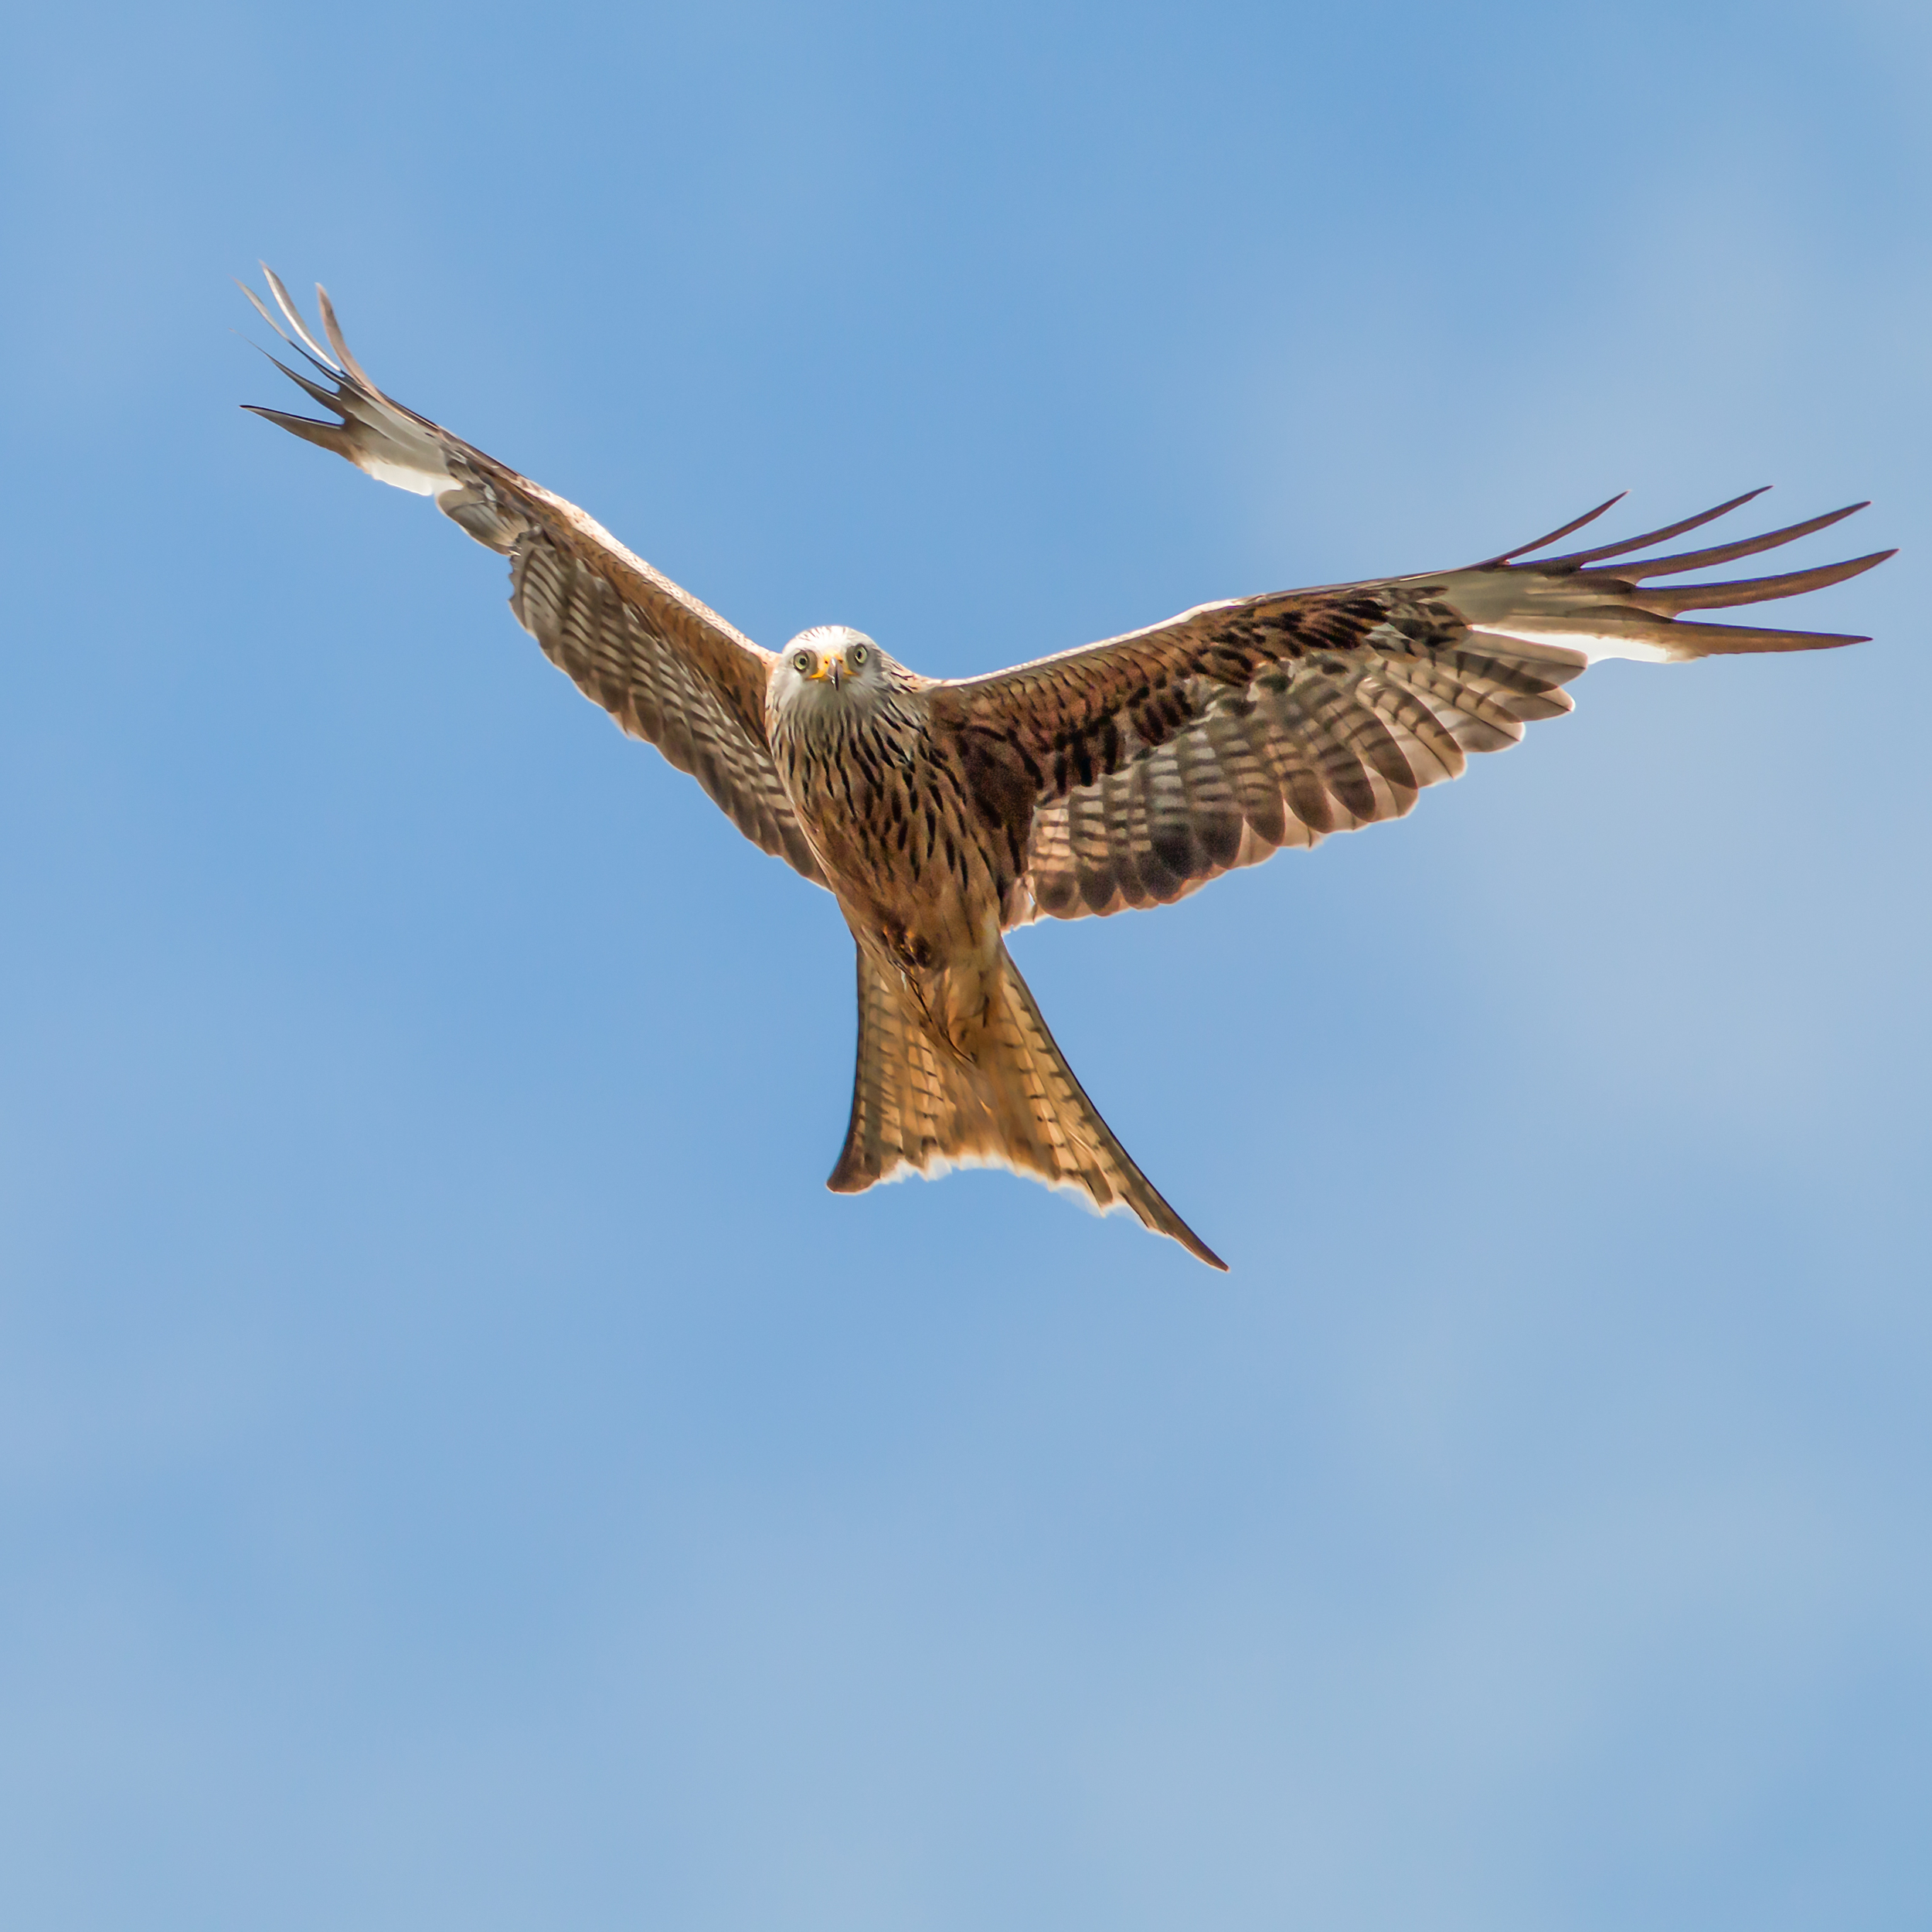 A young Red Kite